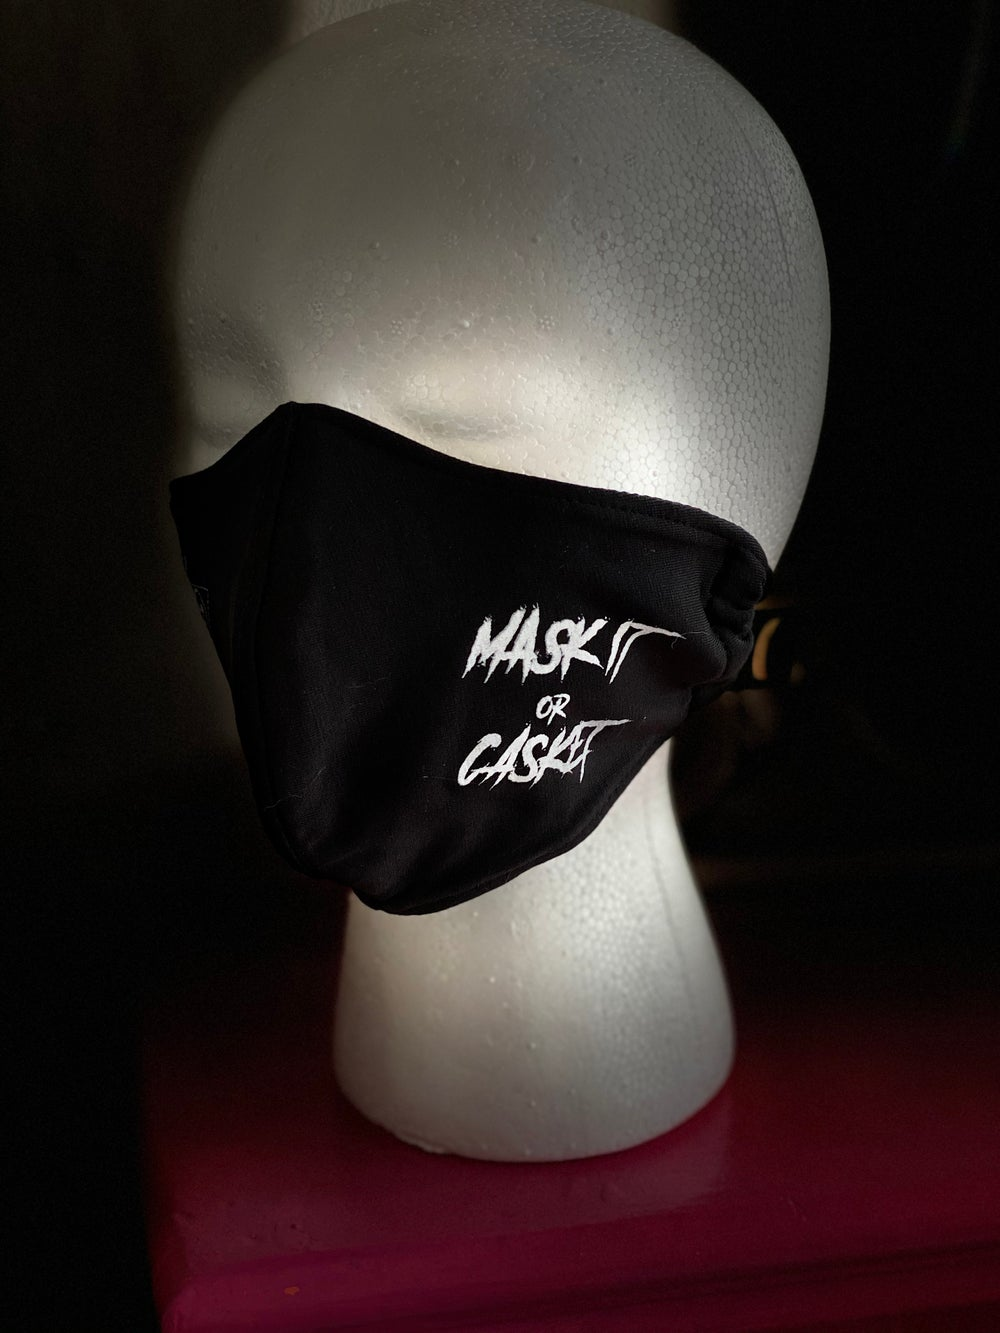 MASK IT OR CASKET (two sided)